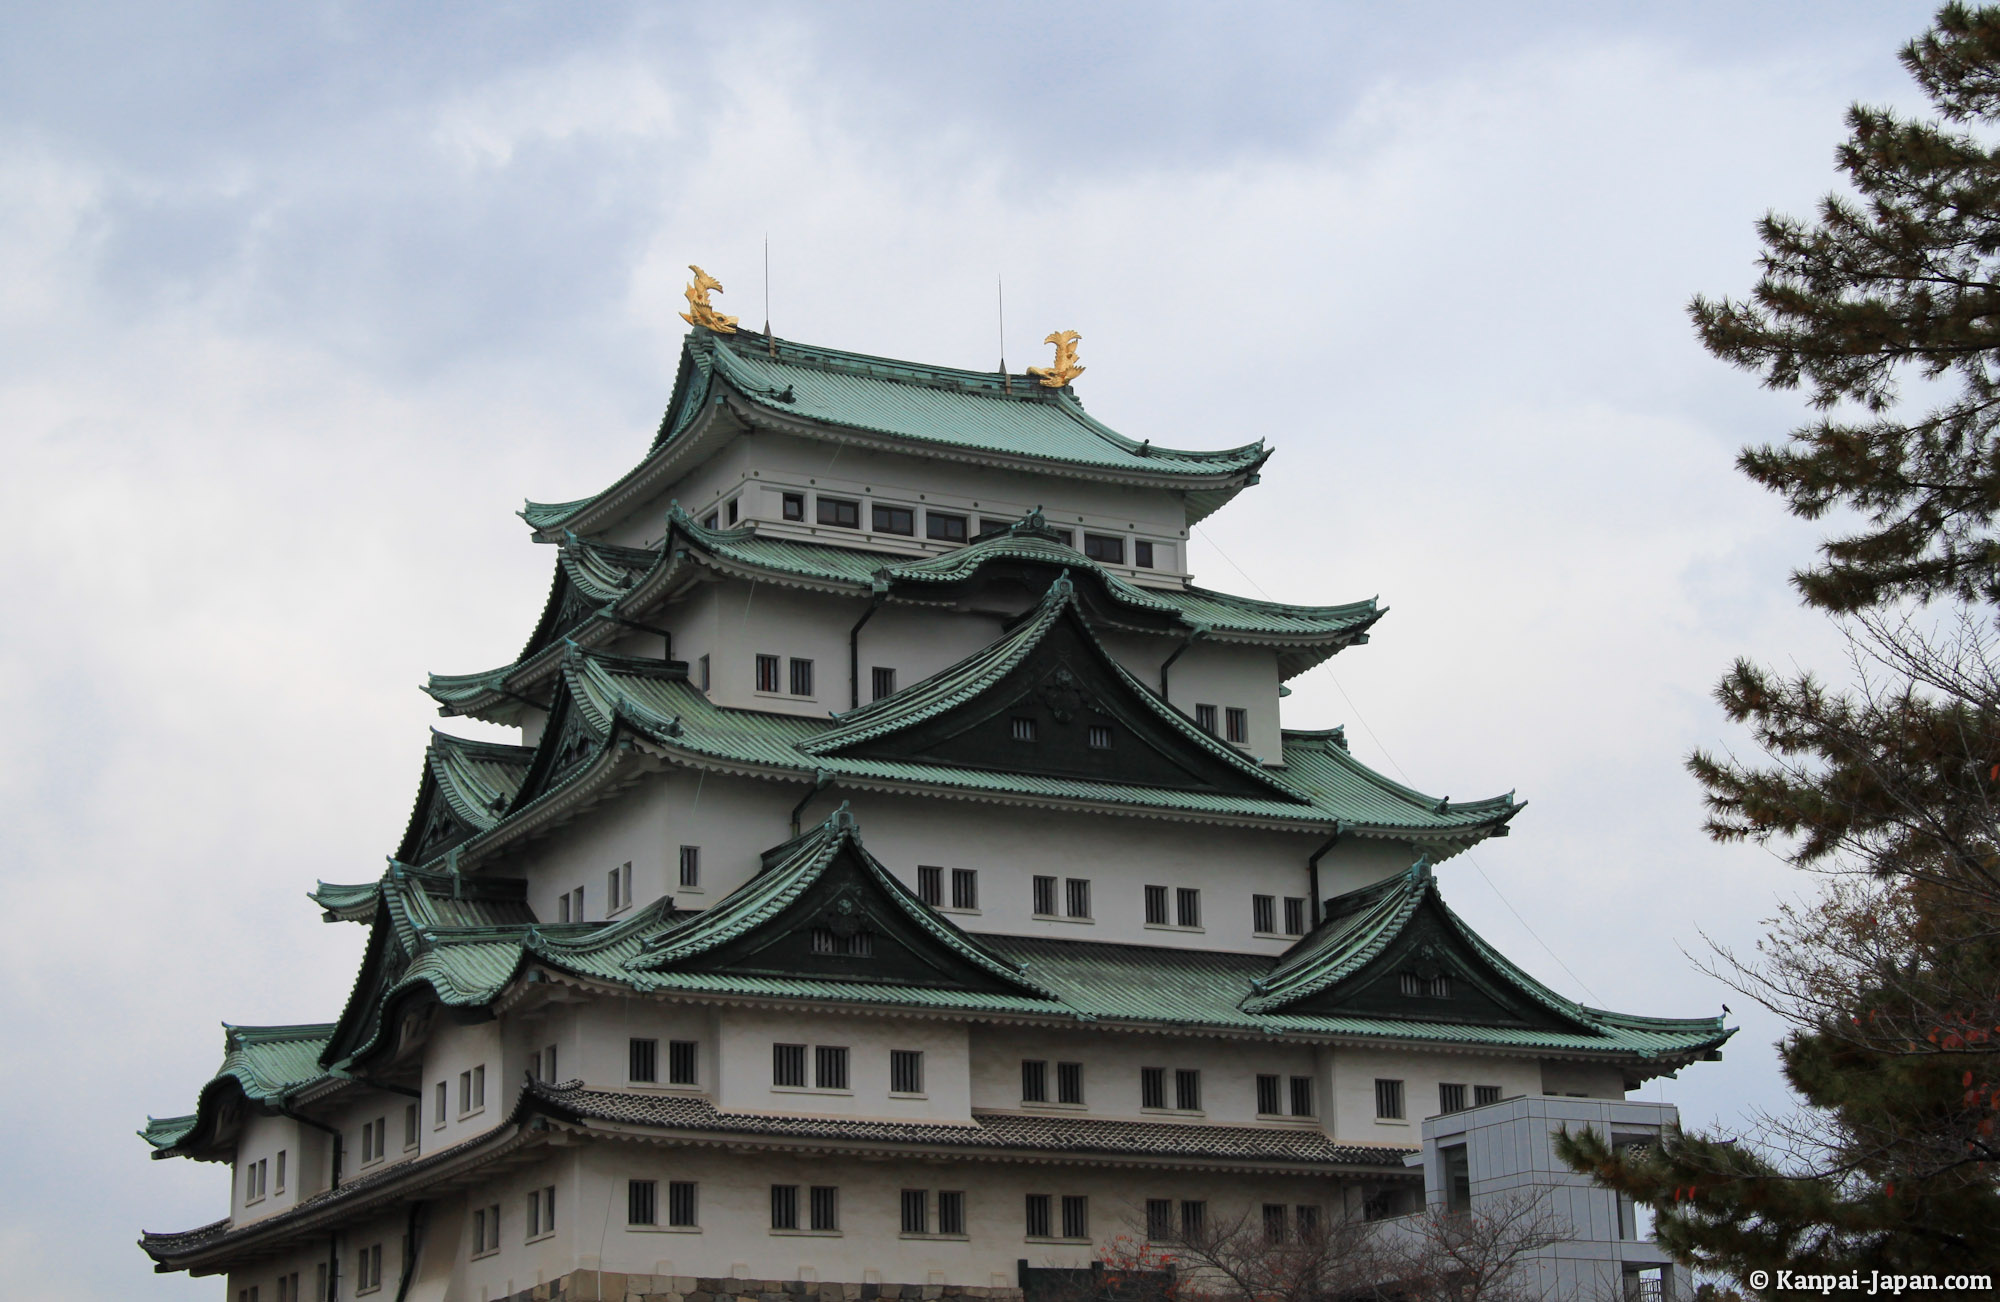 Nagoya Castle - The symbol of the city and its beautiful gardens